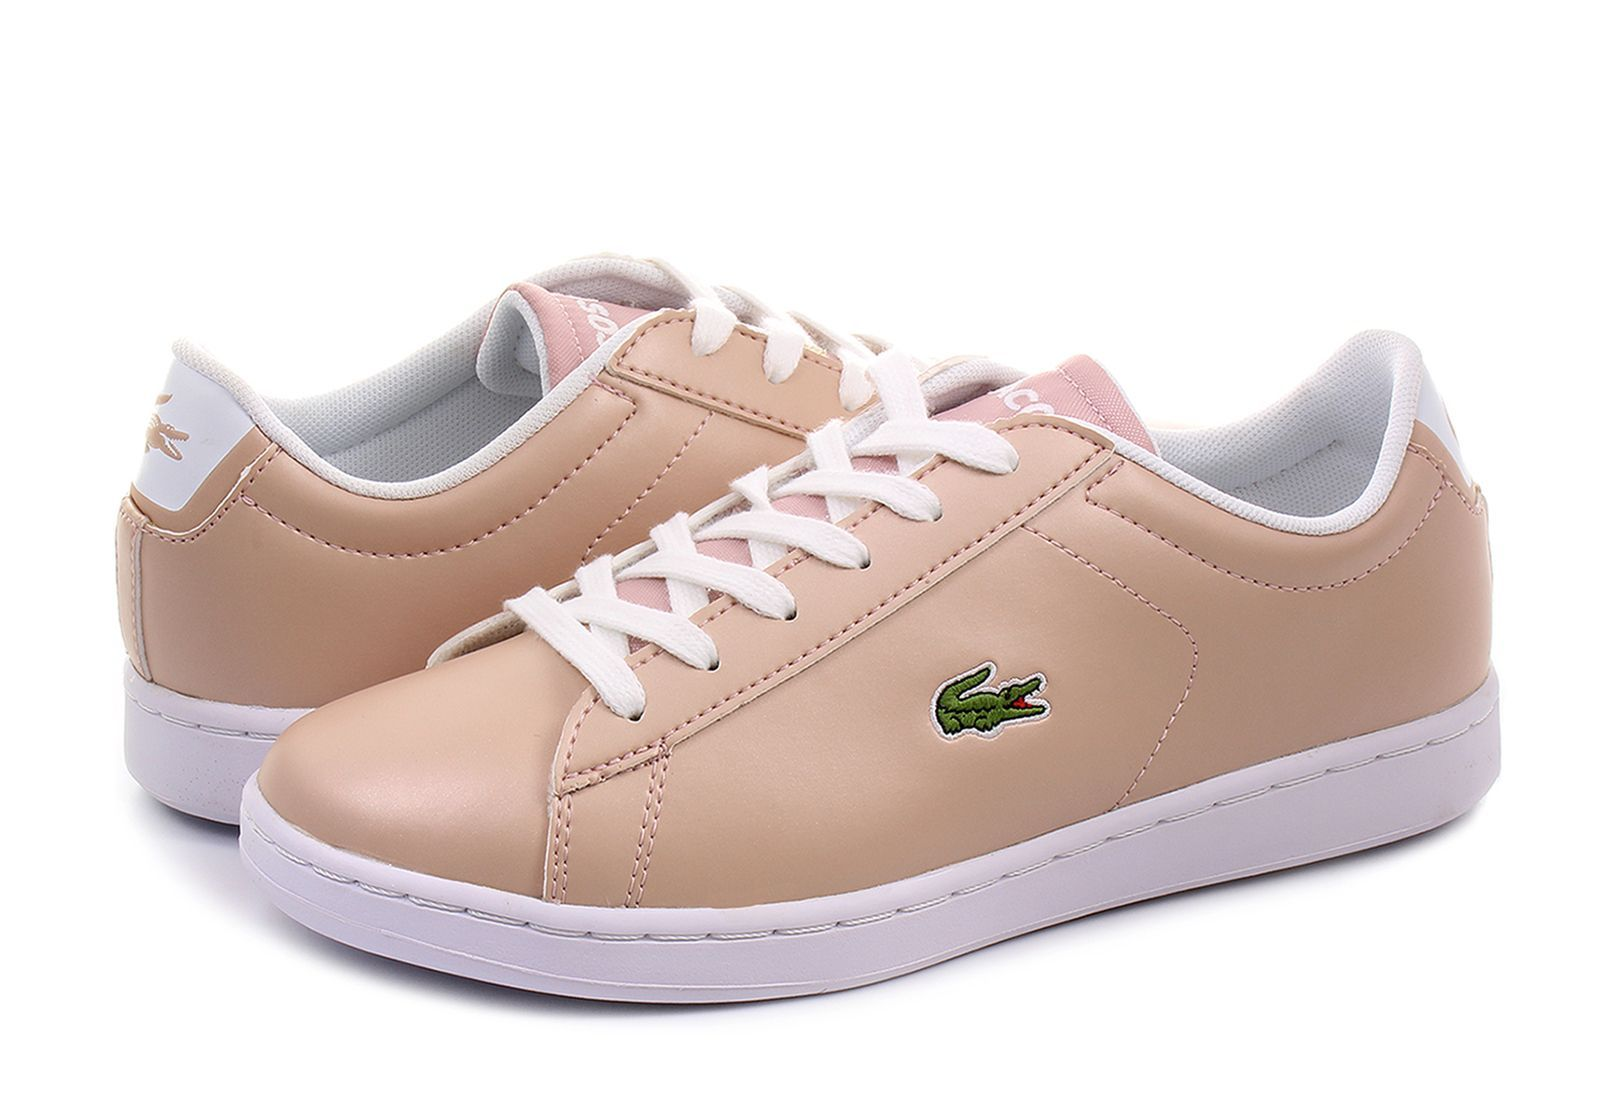 Lacoste Patike Carnaby Evo Office shoes, Carnaby, Lacoste